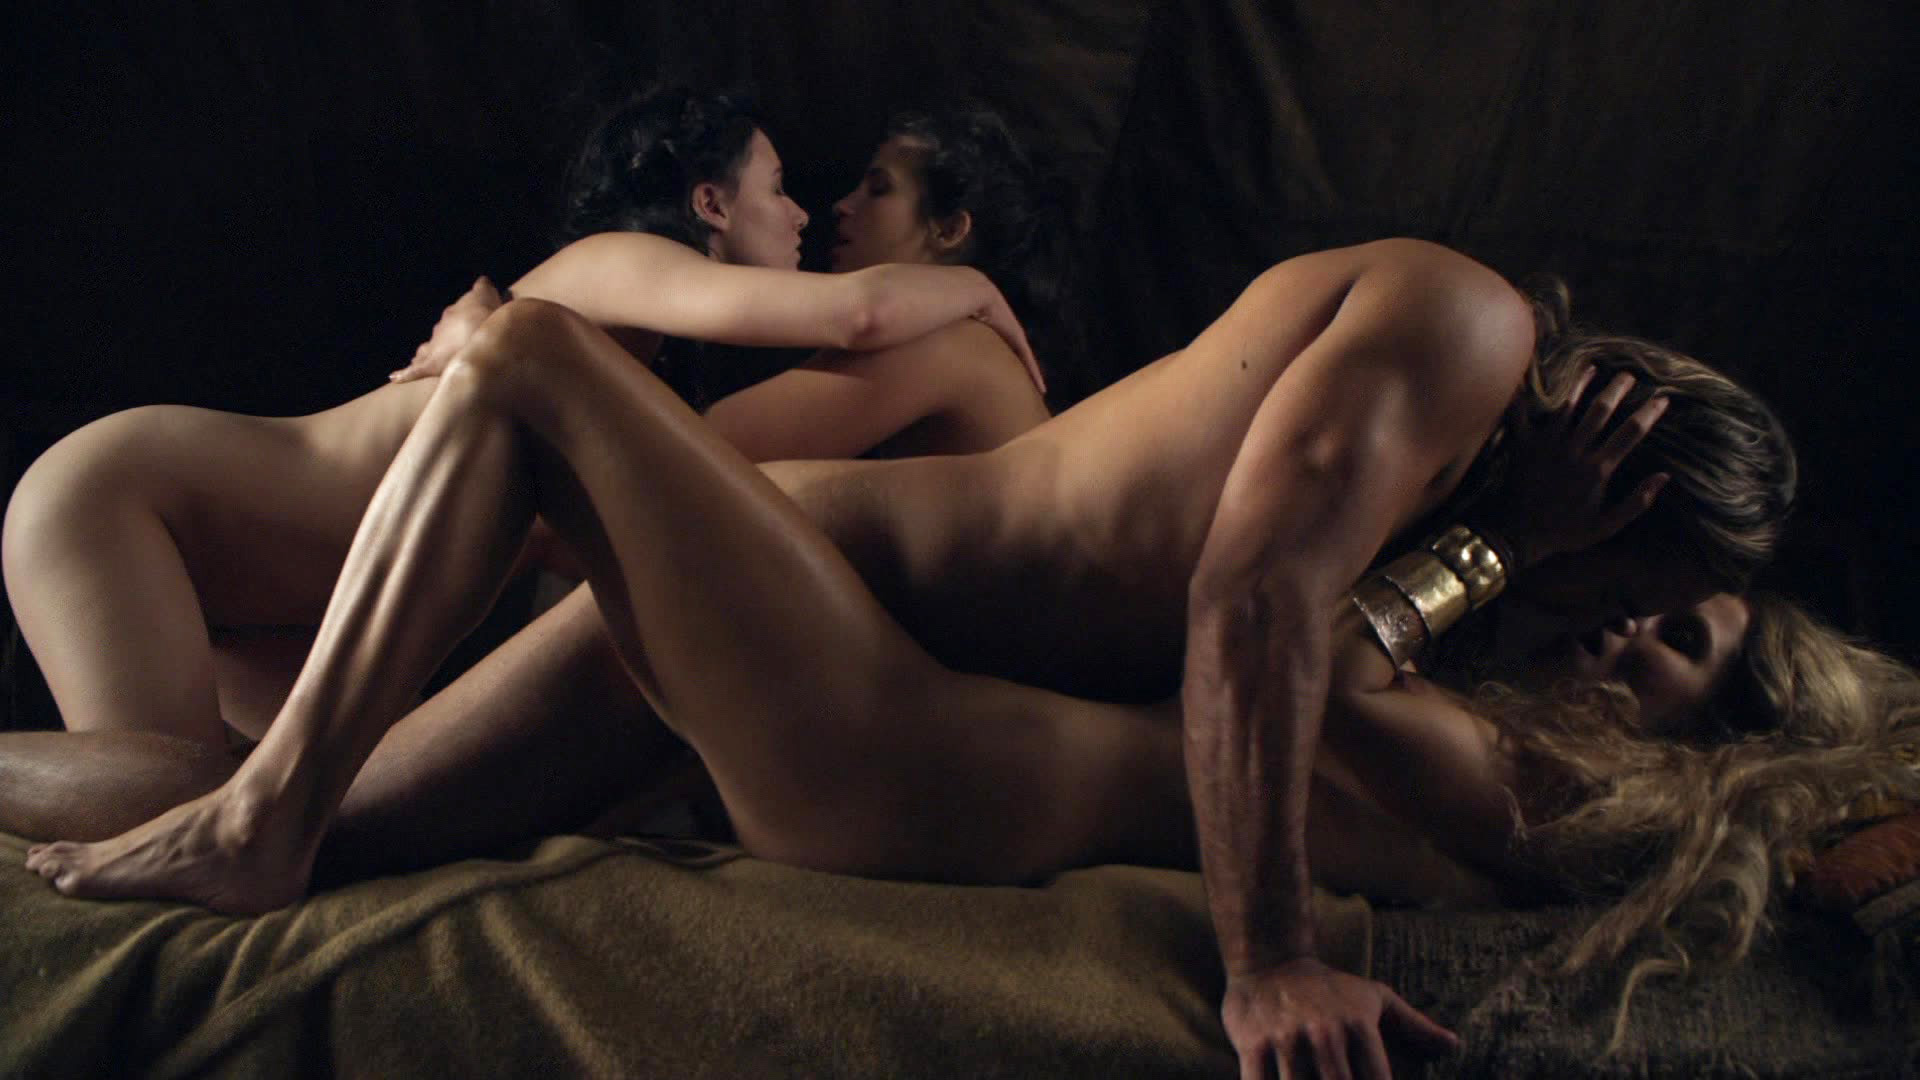 This Position Gives Women A Longer Orgasm According To Study